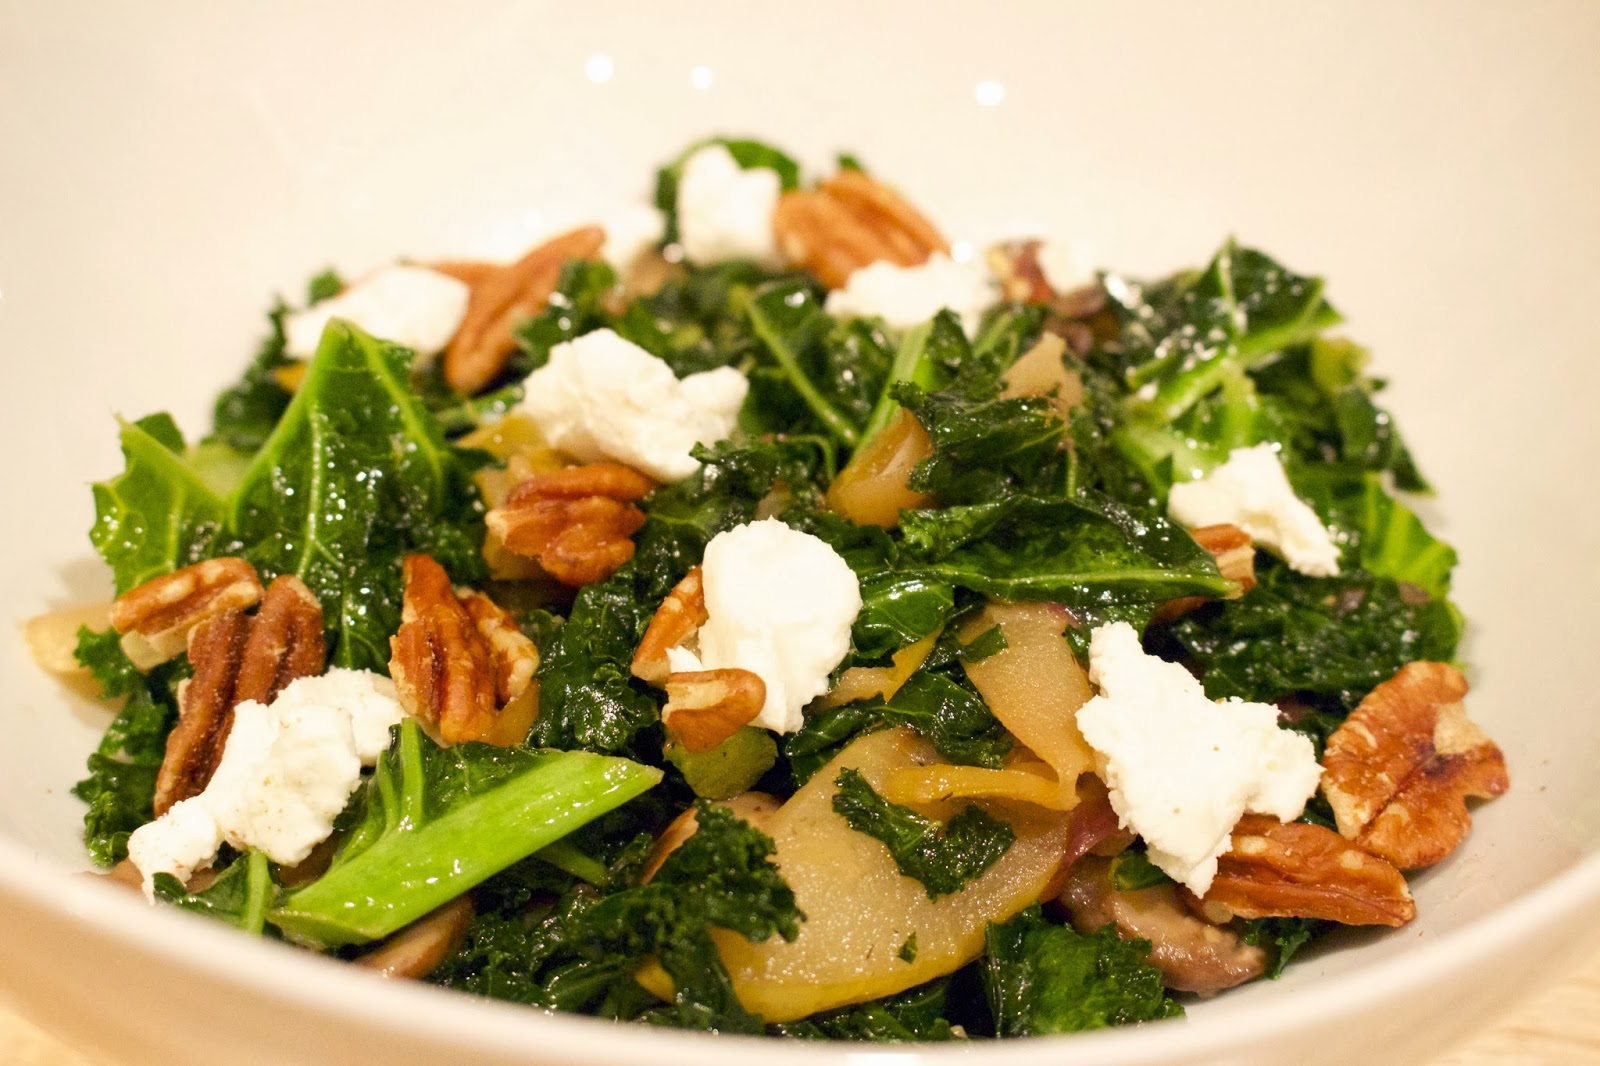 Warm Kale salad with apples and goat cheese | Fit Girl's Kitchen